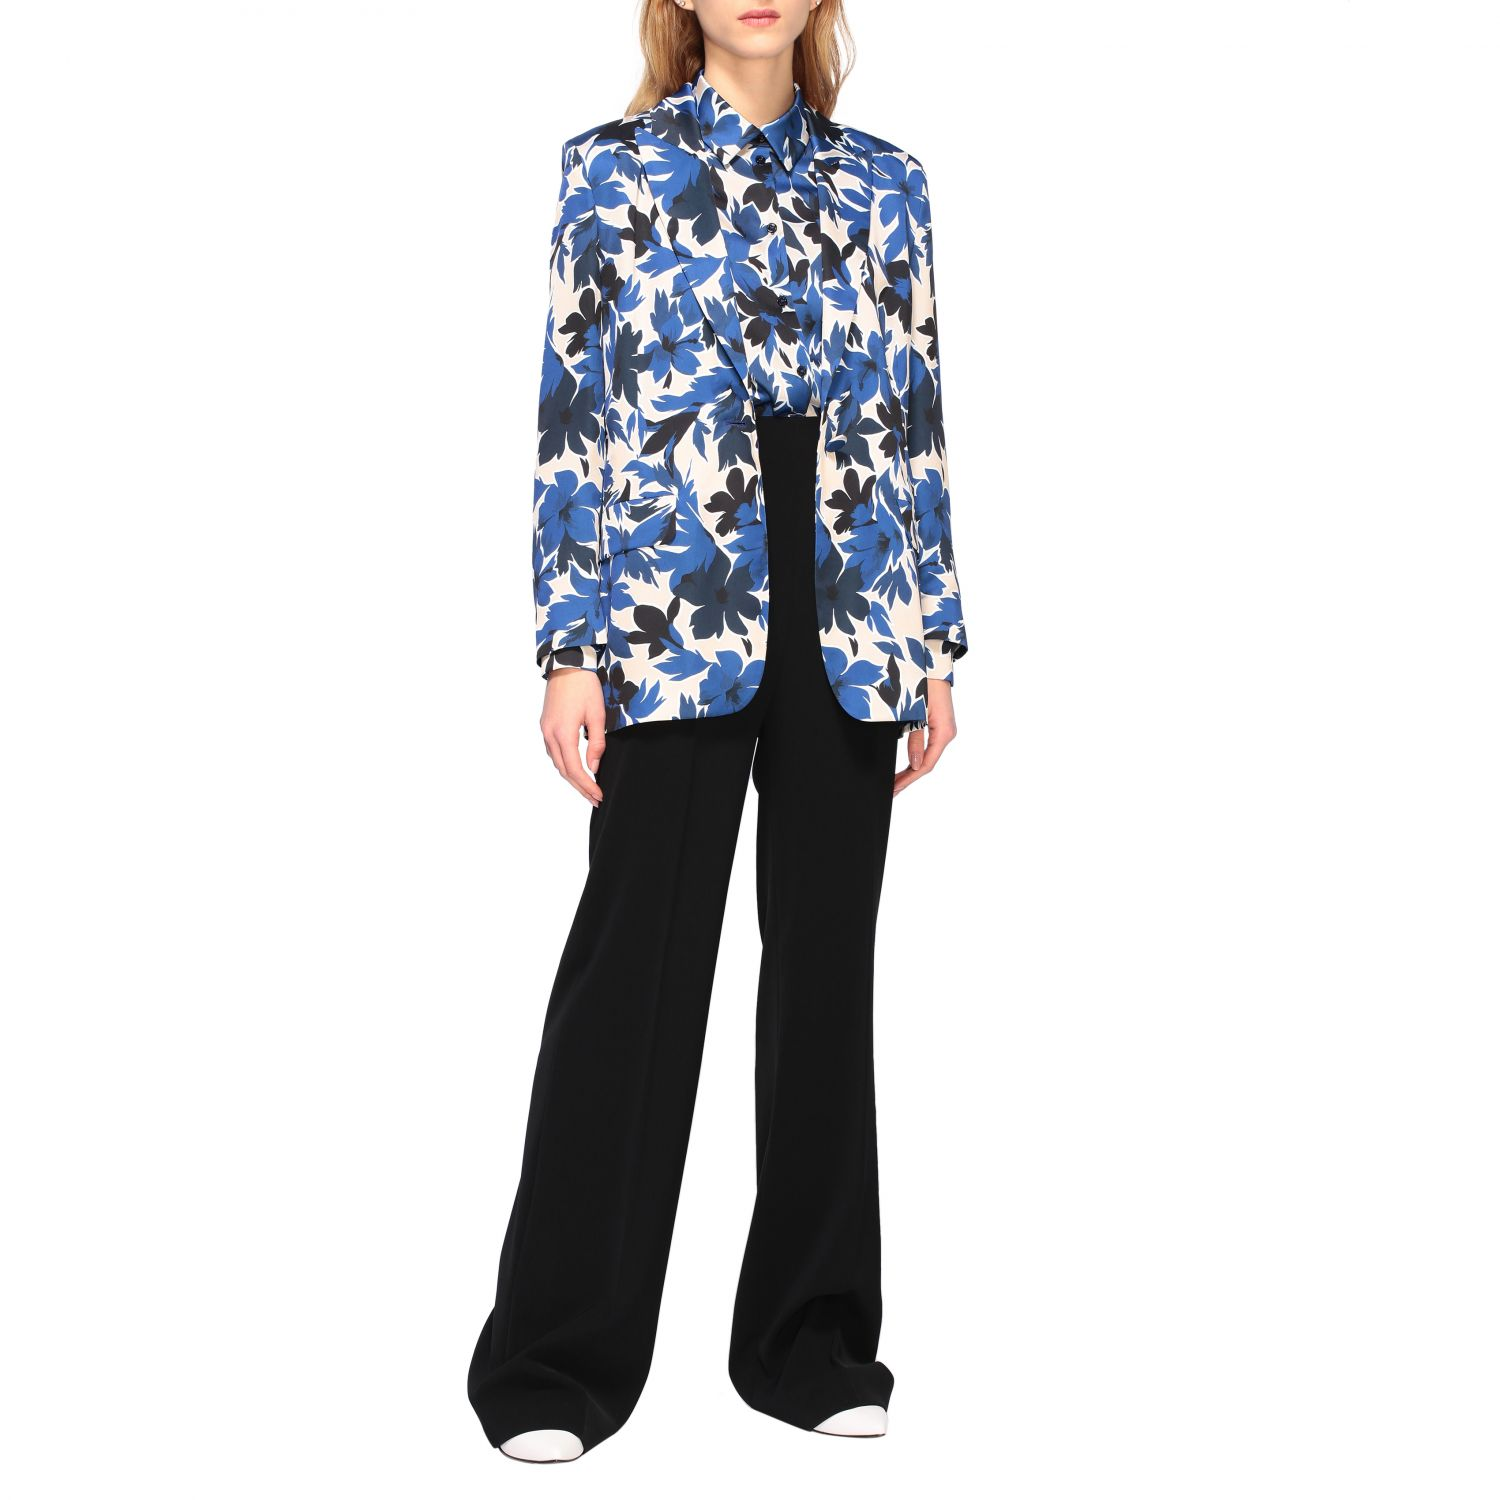 Blazer Boutique Moschino: Blazer women Boutique Moschino blue 2